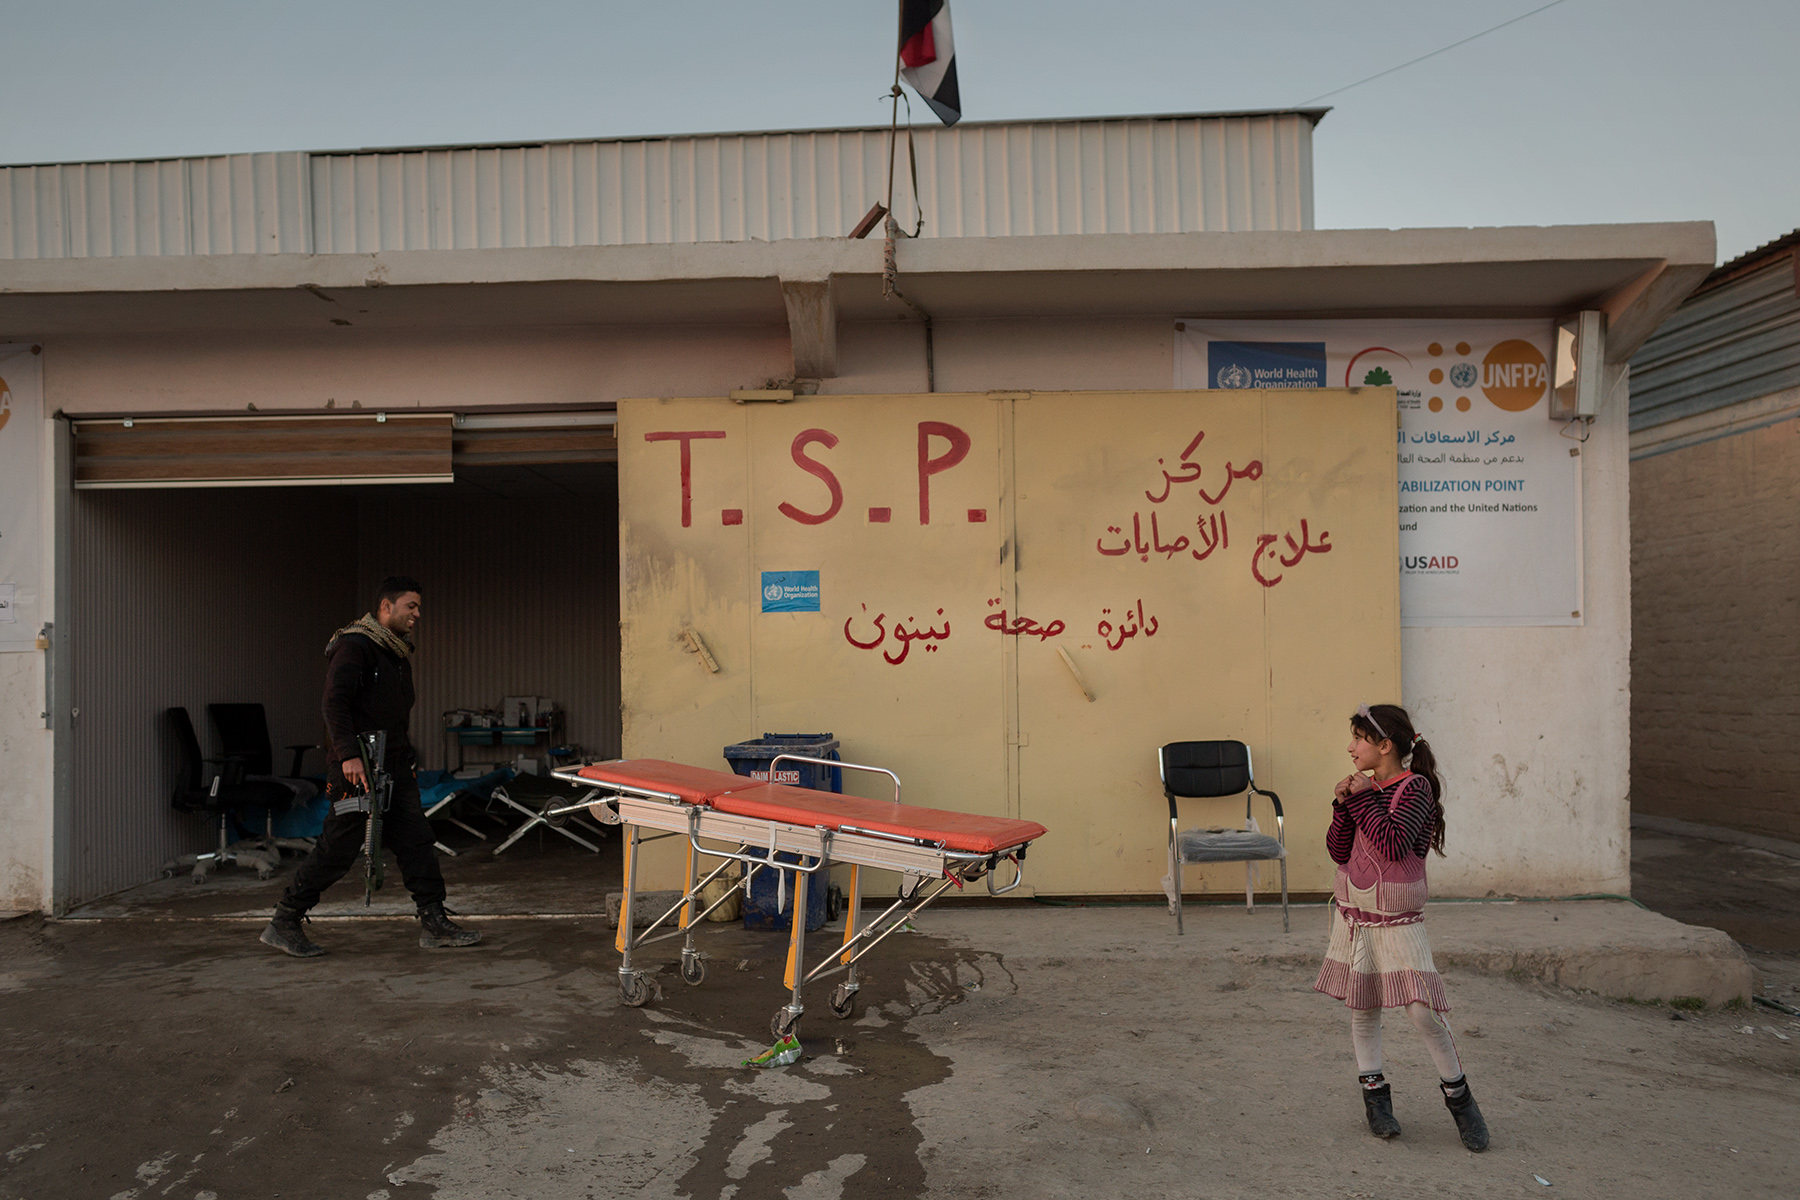 A young girl stands in front of the Medical Advanced Post of Gogjali as a man with a gun walks behind at the entrance of Mosul, Iraq on Jan. 5, 2017. This station and a Medecins Sans Frontieres station on the side are the only medical posts from Mosul to the Khazir displaced center, 40 km away.